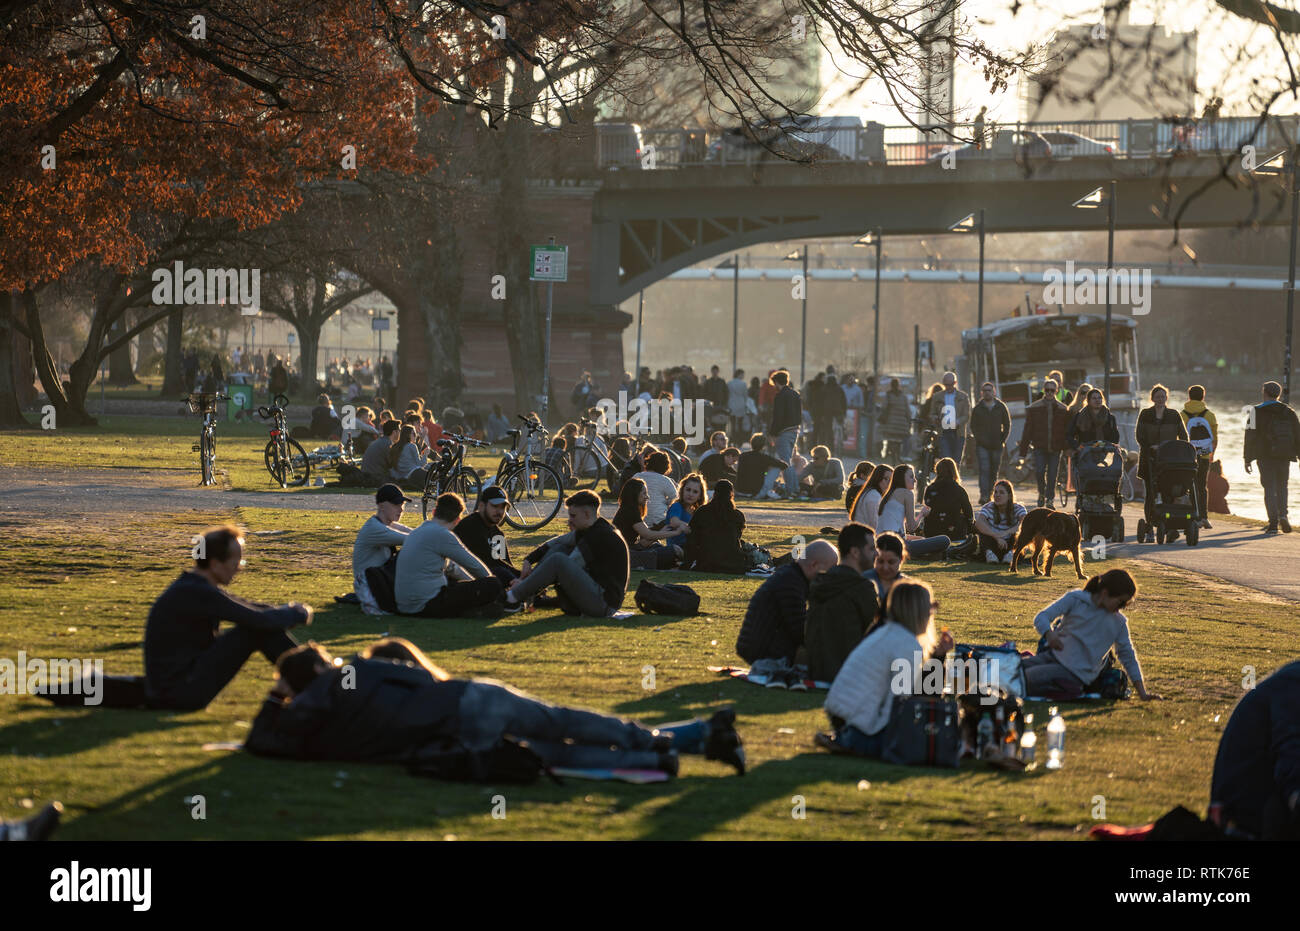 27 February 2019, Hessen, Frankfurt/Main: People cavort on the meadows and on the banks of the Main on a warm February evening. Photo: Frank Rumpenhorst/dpa - Stock Image